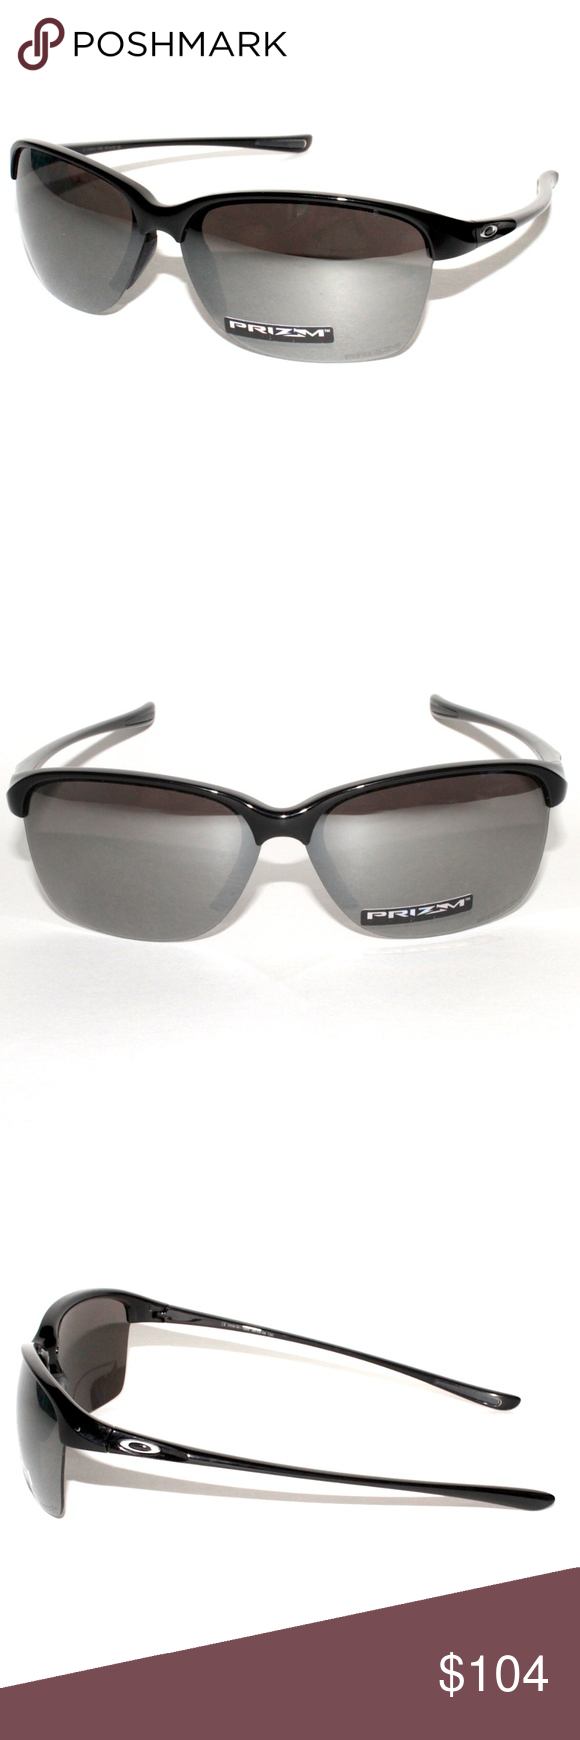 b0d787a0eb Oakley Unstoppable OO9191-1665 65 09 130 Polished Brand New 100% Authentic  Oakley